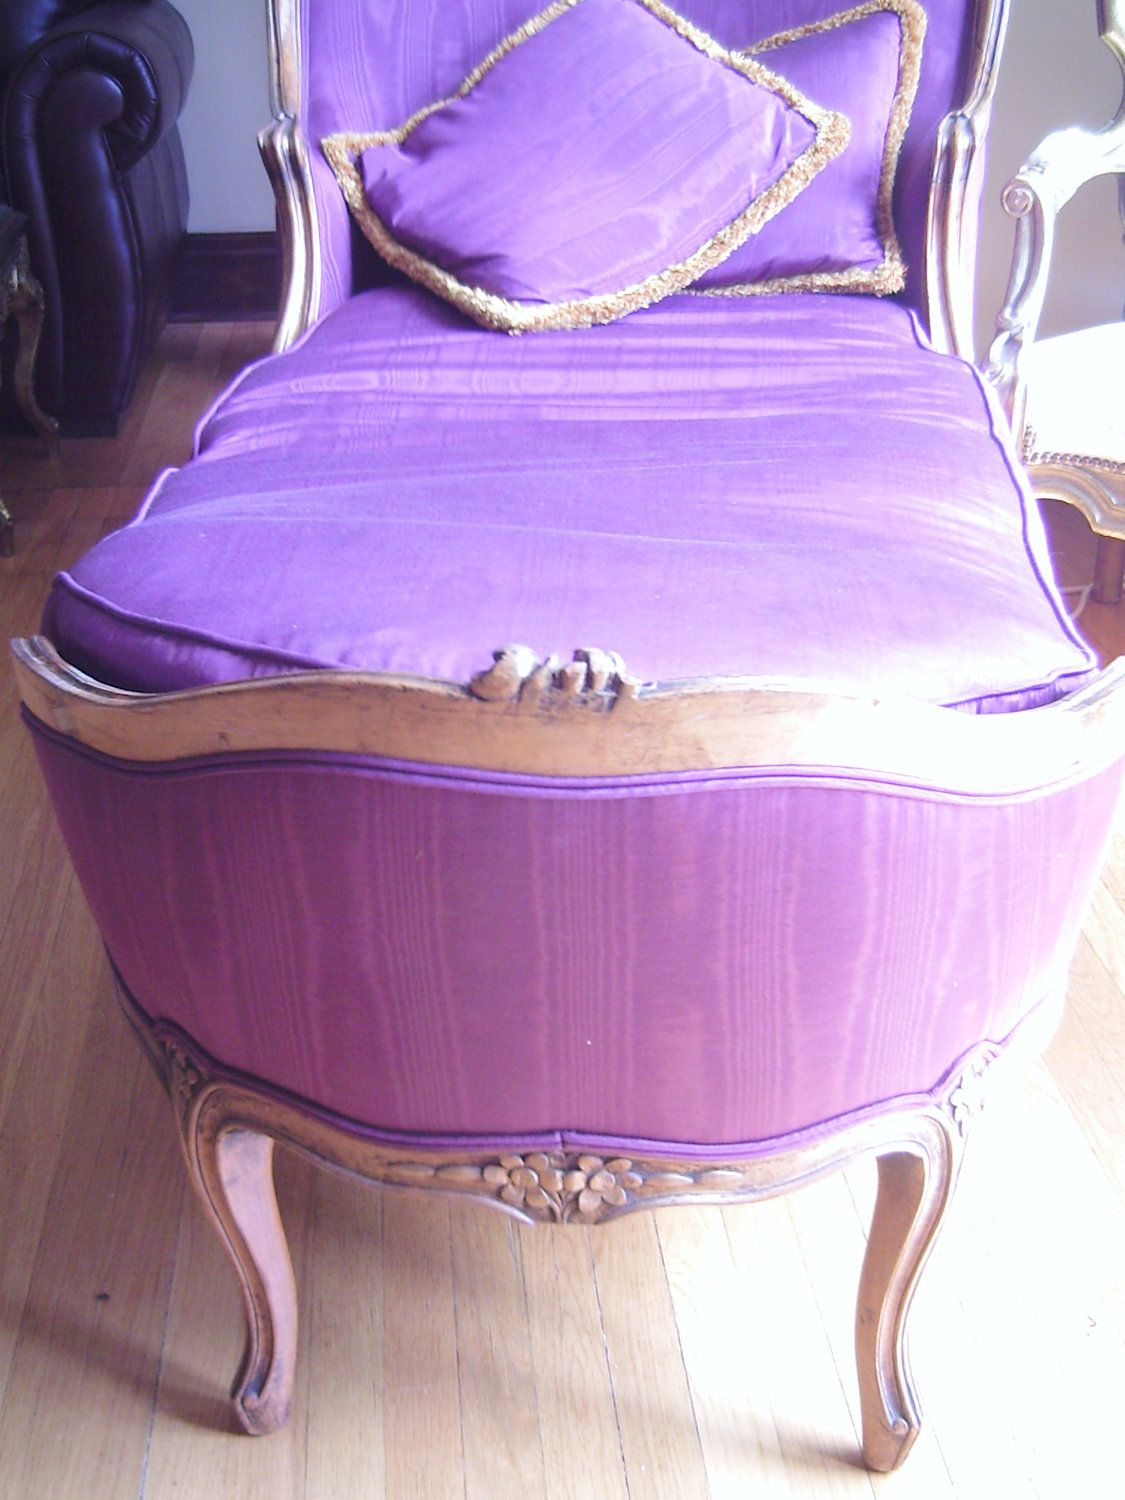 fainting sofa purple recolor white leather french couch hollywood regency shared i really need one of these faint a lot